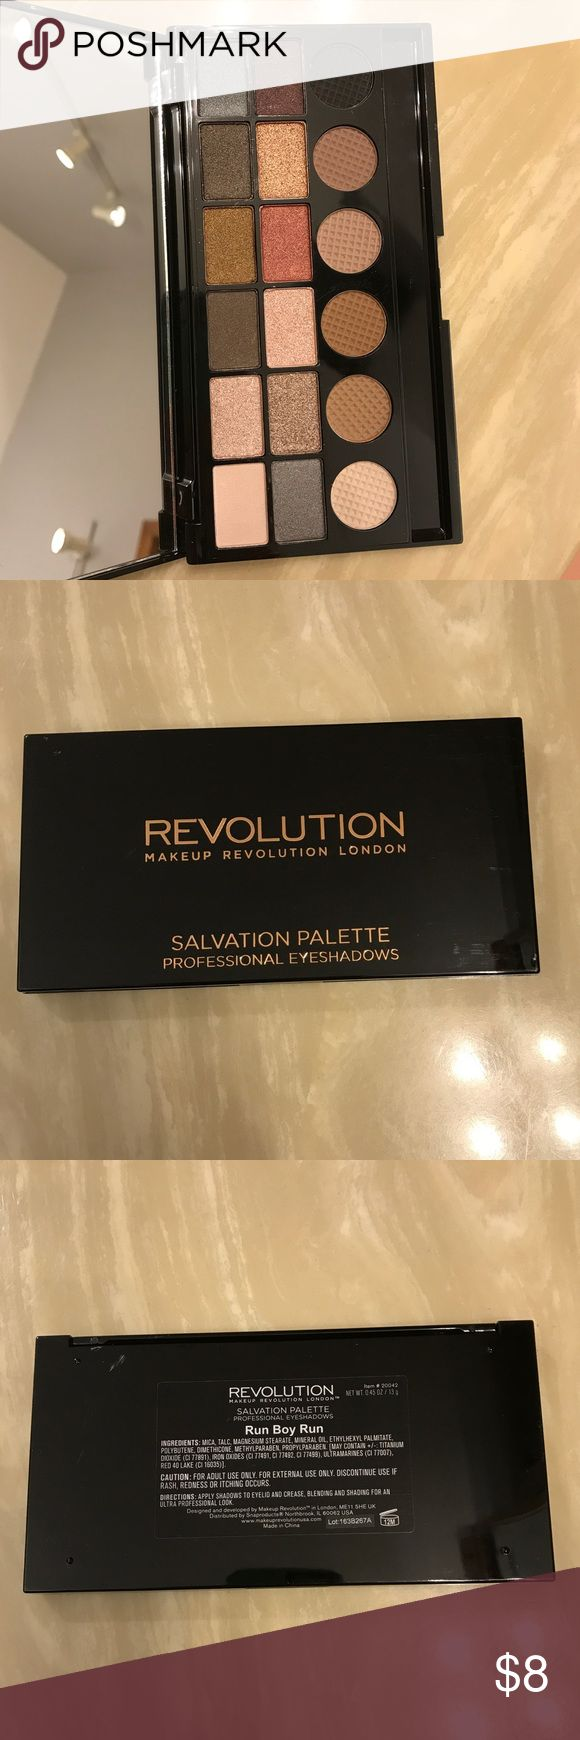 *NEW!!* Makeup Revolution eyeshadow palette! *BRAND NEW!* Makeup Revolution Salvation eyeshadow palette in 'Run Boy Run'. 12 beautiful shimmer eyeshadows and 6 perfect neutral mattes! Never swatched! No box Makeup Revolution Makeup Eyeshadow